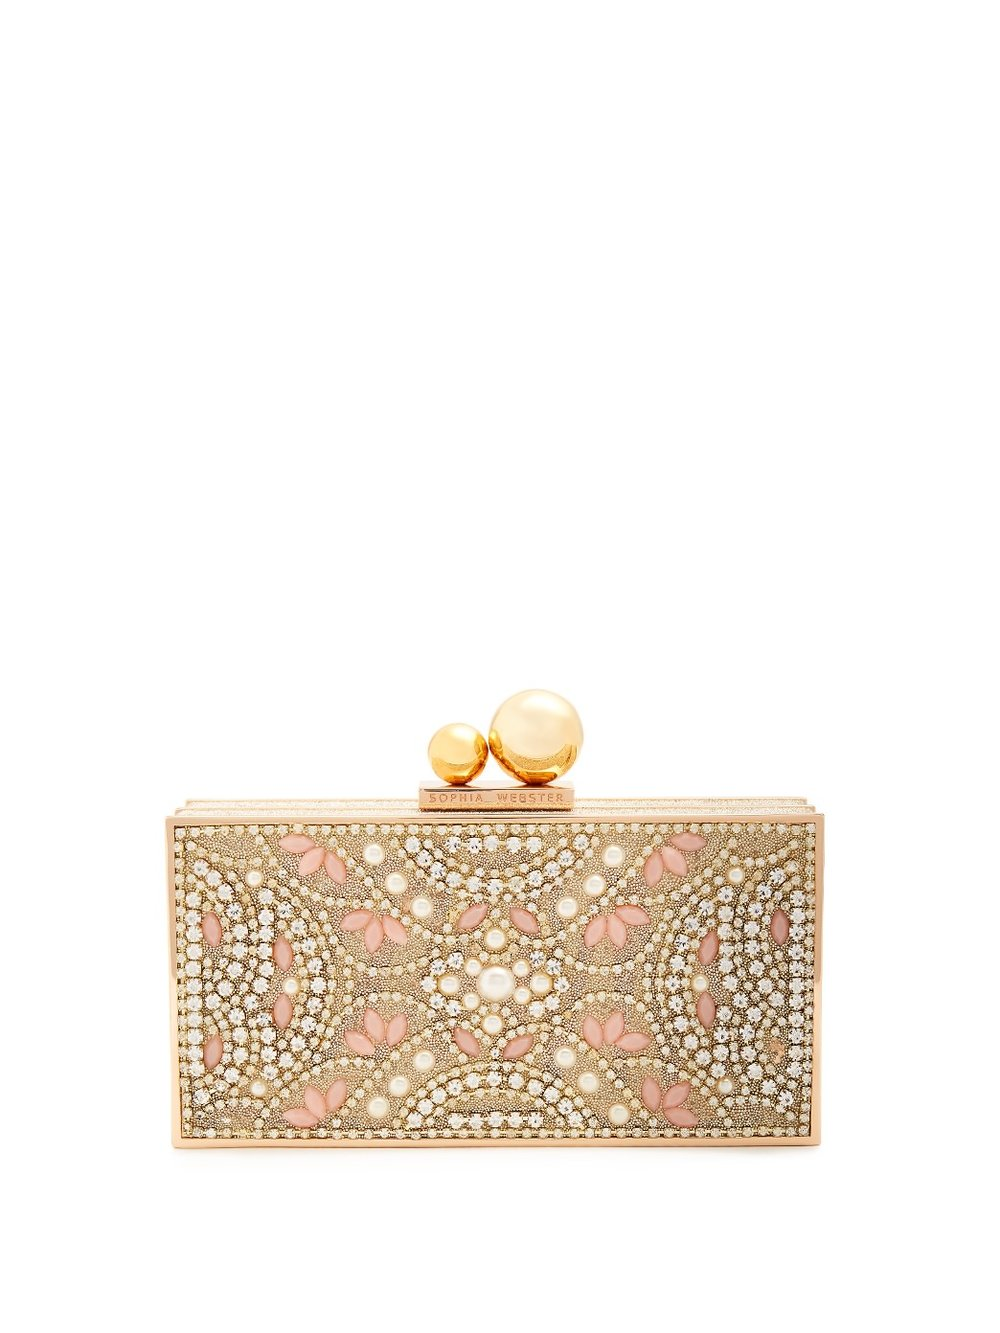 Sophia Webster Clara Crystal Box Clutch